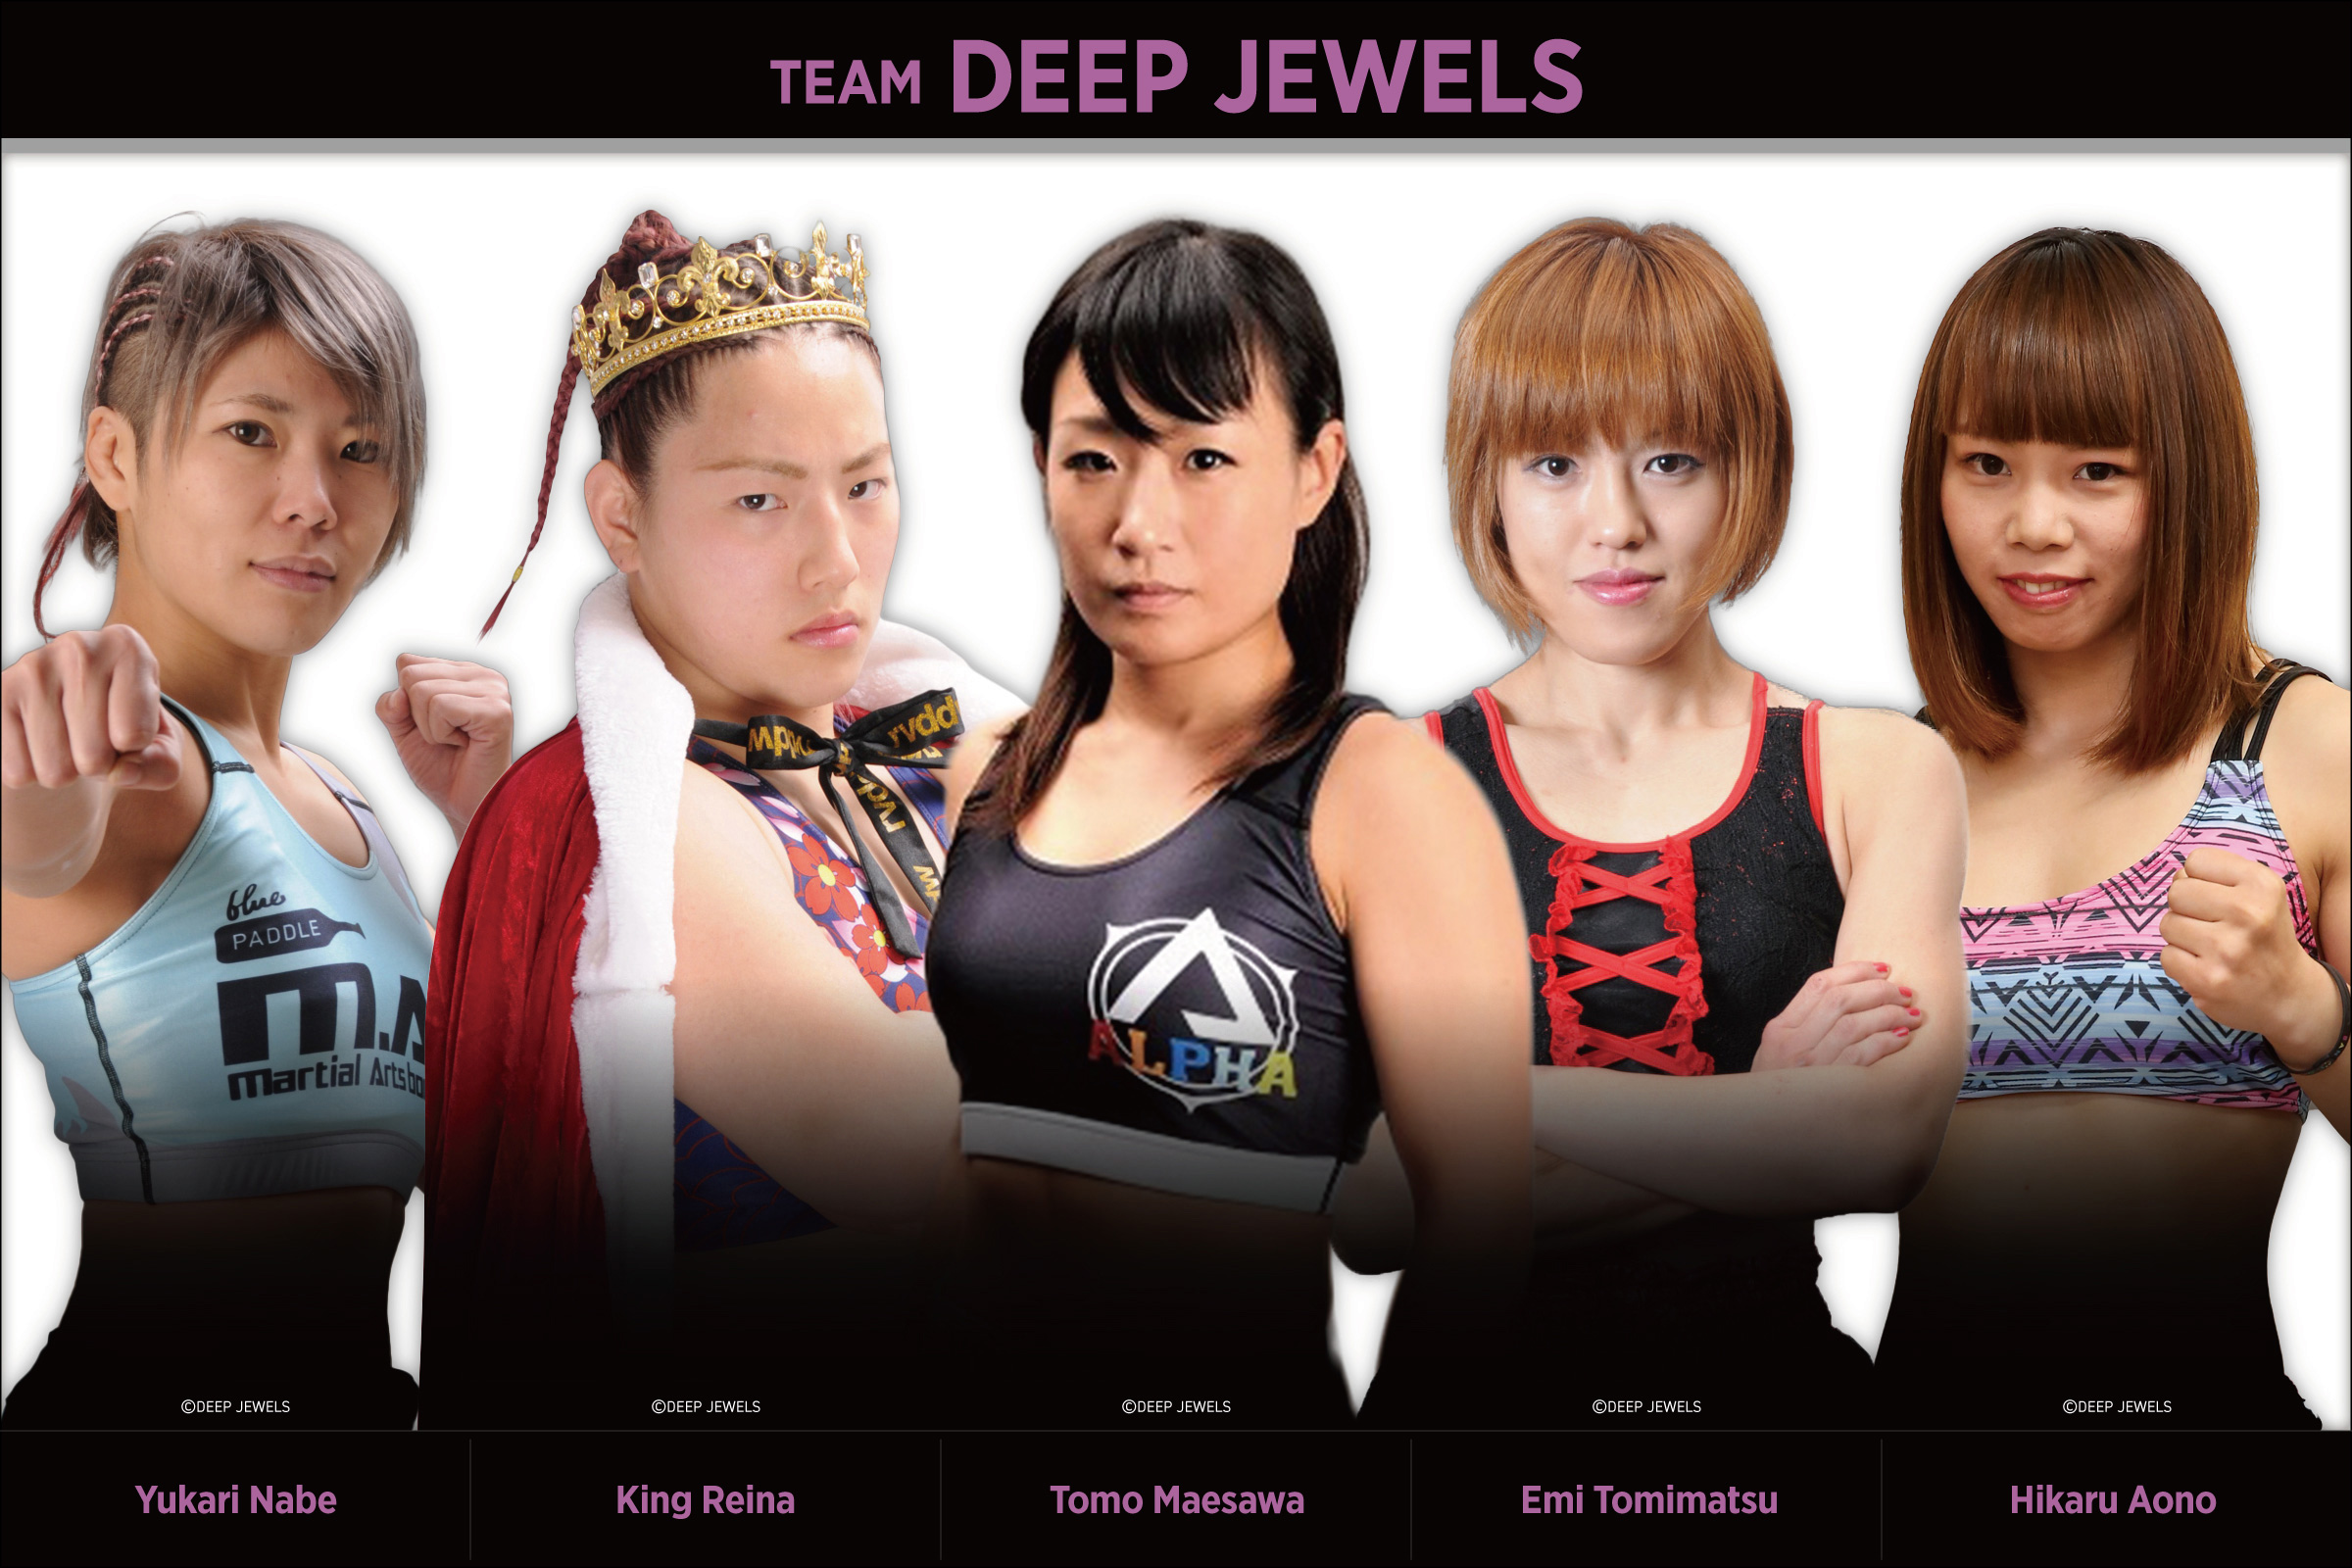 TEAM DEEP JEWELS